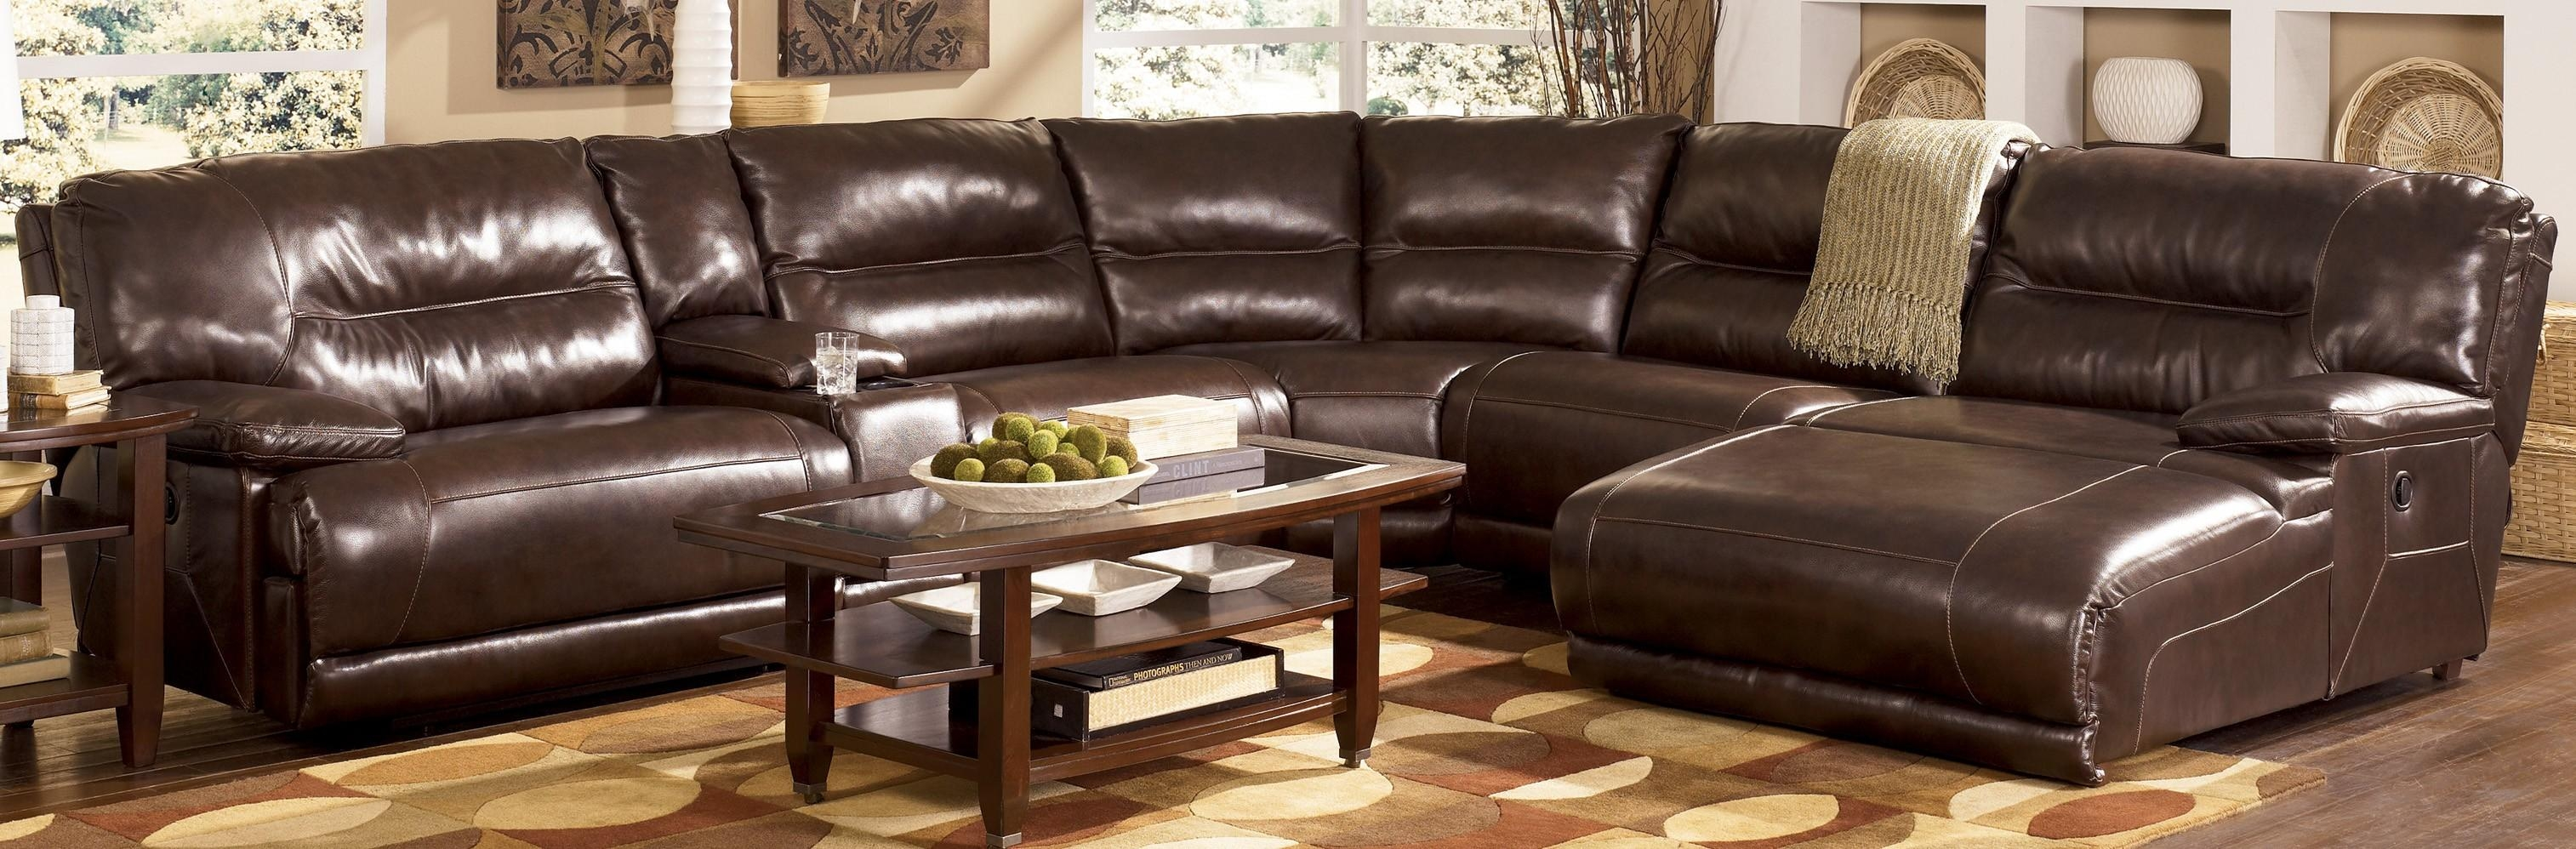 Stunning 6 Piece Leather Sectional Sofa 68 For Your Sectional In Leather Sectional Sofas Toronto (View 2 of 20)